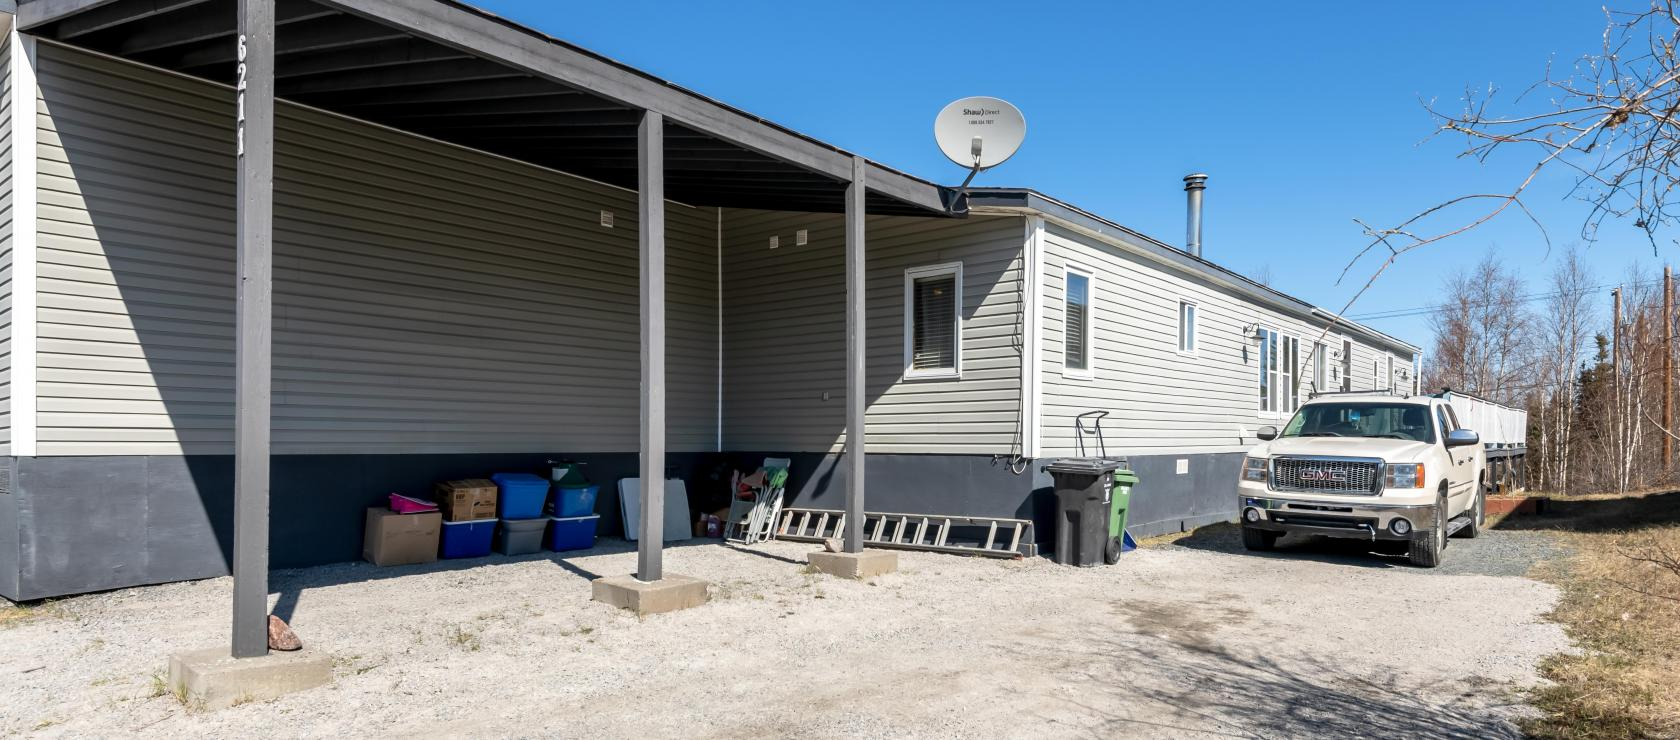 6211 Finlayson Drive N., Range Lake, Yellowknife 2